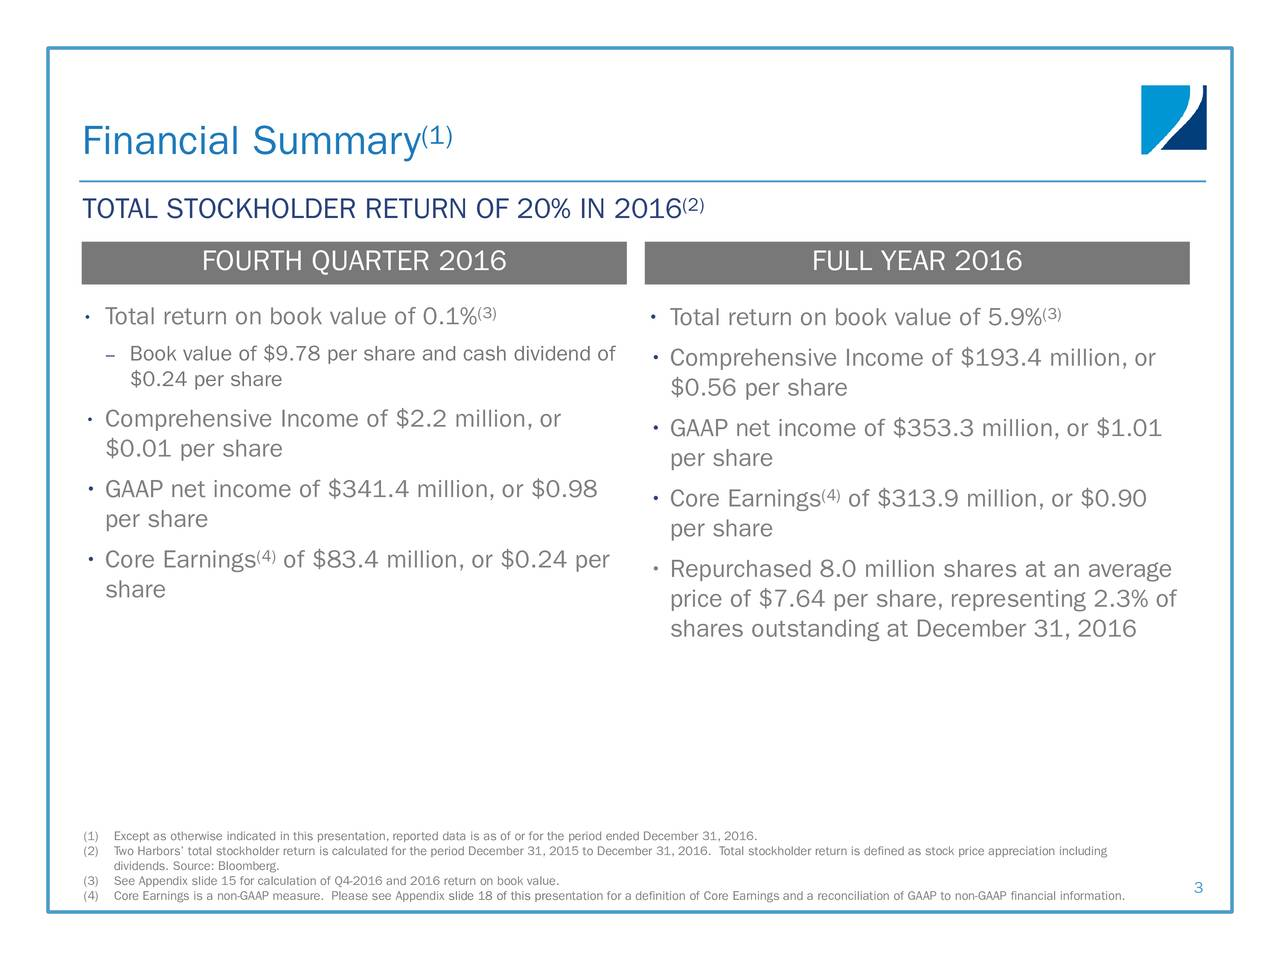 TOTAL STOCKHOLDER RETURN OF 20% IN 2016 (2) FOURTH QUARTER 2016 FULL YEAR 2016 Total return on book value of 0.1% (3)  Total return on book value of 5.9% (3) Book value of $9.78 per share and cash dividend of  Comprehensive Income of $193.4 million, or $0.24 per share $0.56 per share Comprehensive Income of $2.2 million, or  GAAP net income of $353.3 million, or $1.01 $0.01 per share per share GAAP net income of $341.4 million, or $0.98 (4) Core Earnings of $313.9 million, or $0.90 per share per share (4) Core Earnings of $83.4 million, or $0.24 per  Repurchased 8.0 million shares at an average share price of $7.64 per share, representing 2.3% of shares outstanding at December 31, 2016 (1)Except as otherwise indicated in this presentation, reported data is as of or for the period ended December31, 2016. (2)Two Harbors total stockholder return is calculated for the period December 31, 2015 to December 31, 2016. Total stockholder return is defined as stock price appreciation including (3)See Appendix slide 15 for calculation of Q4-2016 and 2016 return on book value. (4)Core Earnings is a non-GAAP measure. Please see Appendix slide 18 of this presentation for a definition of Core Earnings and a reconciliation of GAAP to non-GAAP financial information.